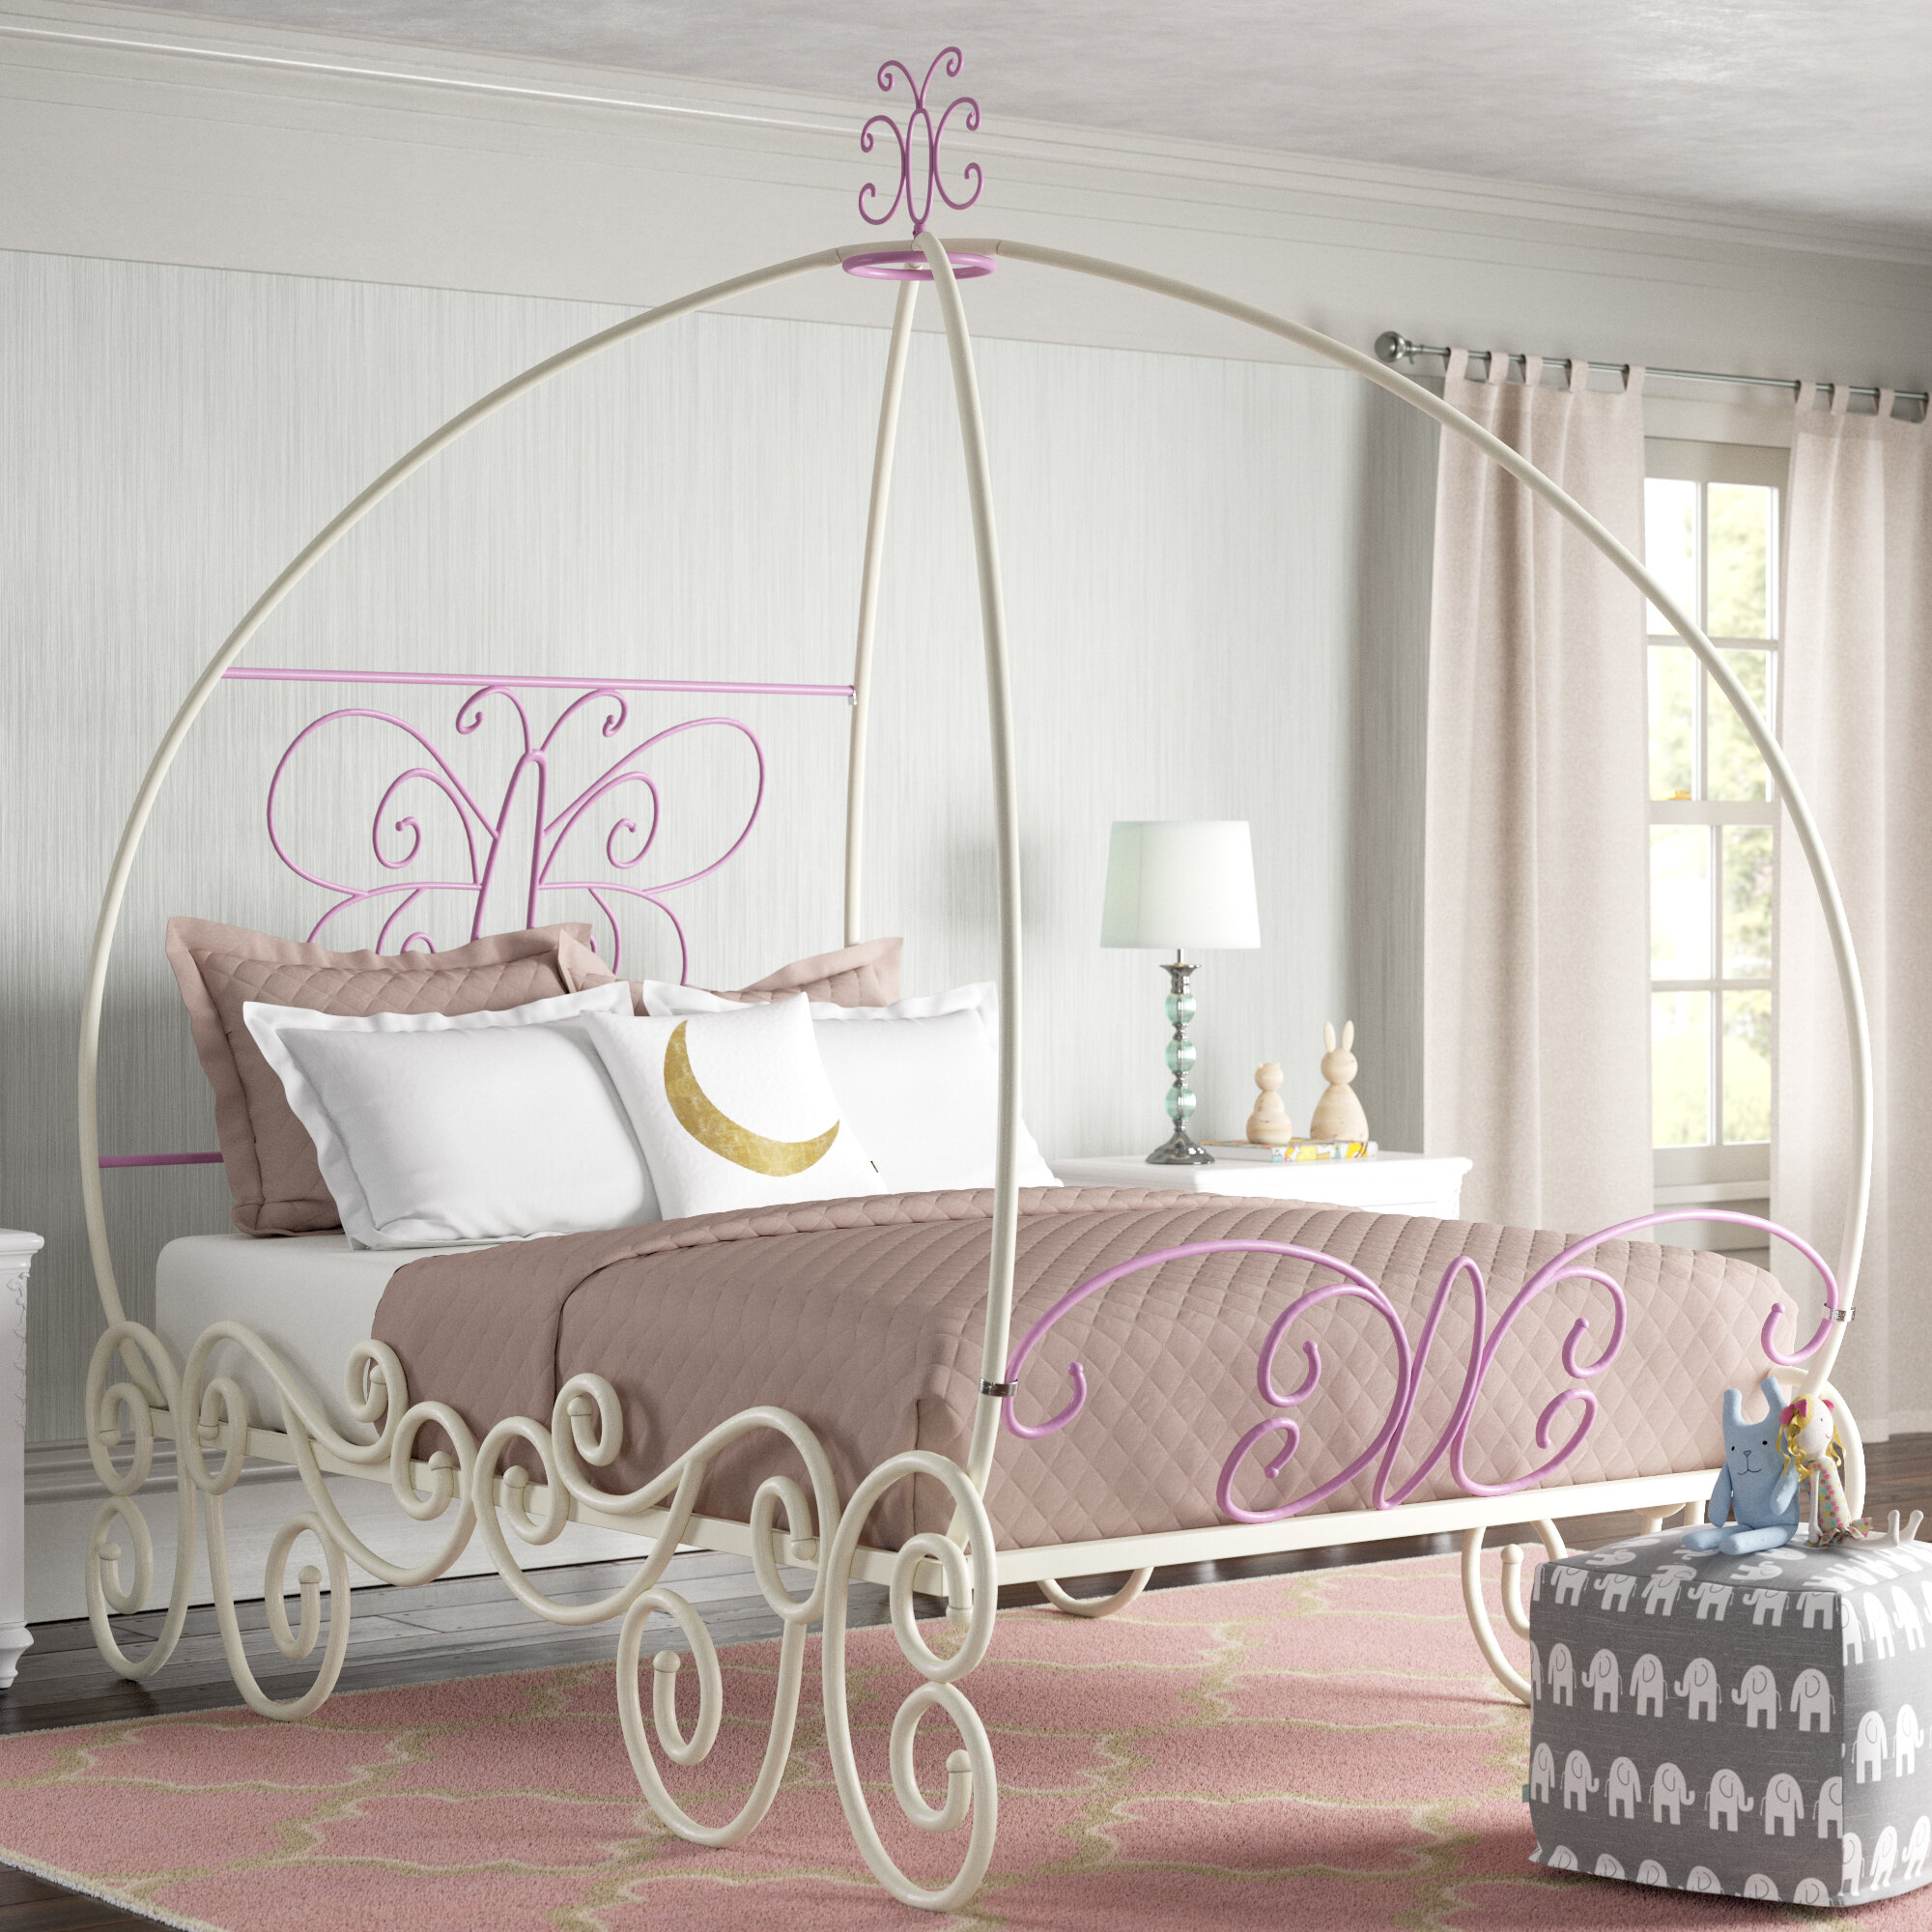 Wayfair Canopy Kids Beds You Ll Love In 2021